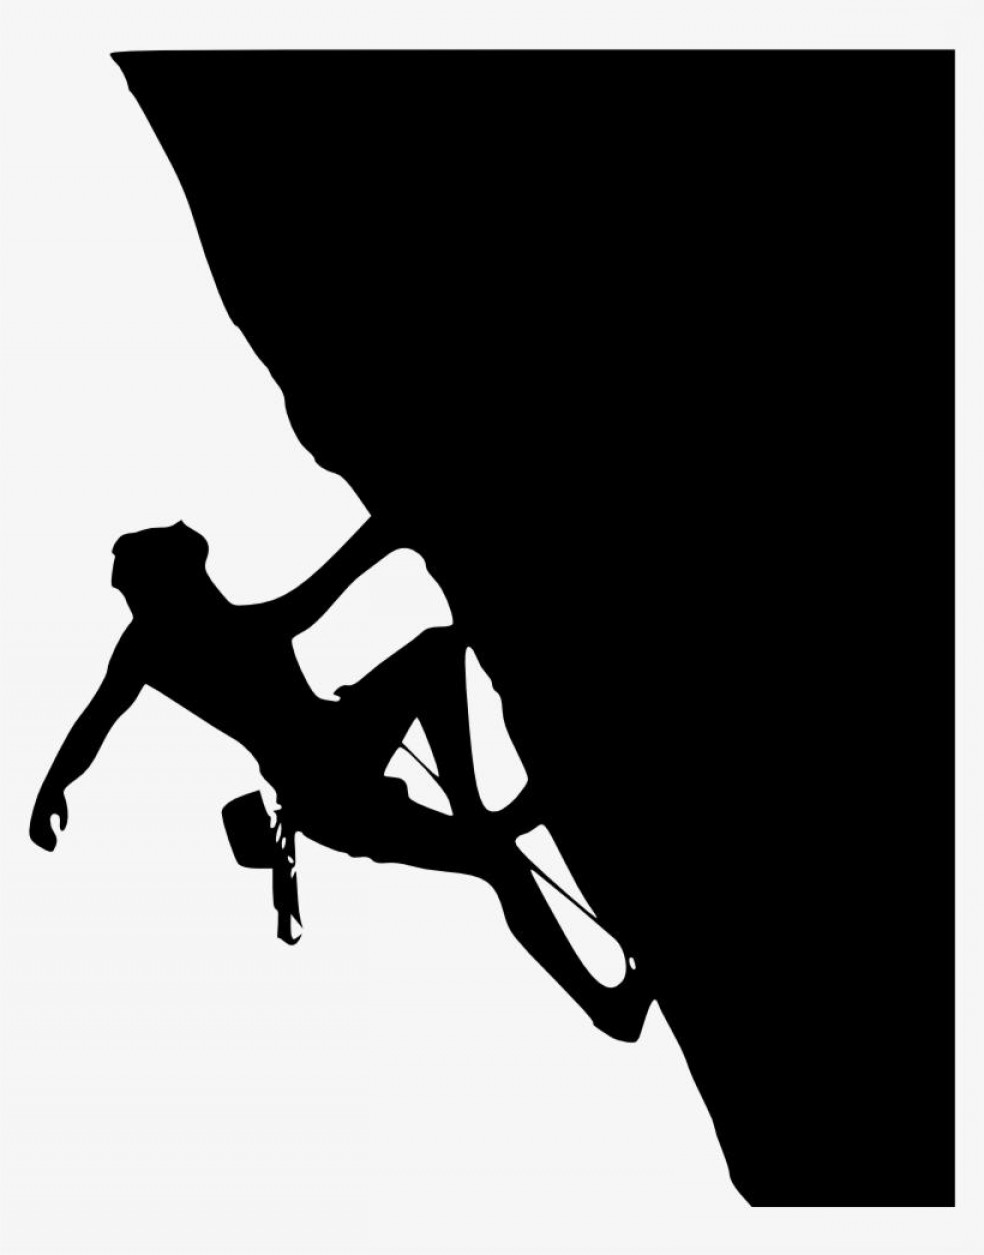 Climbing Silhouette Vector Art: Best Rock Climbing Clip Art Cdr